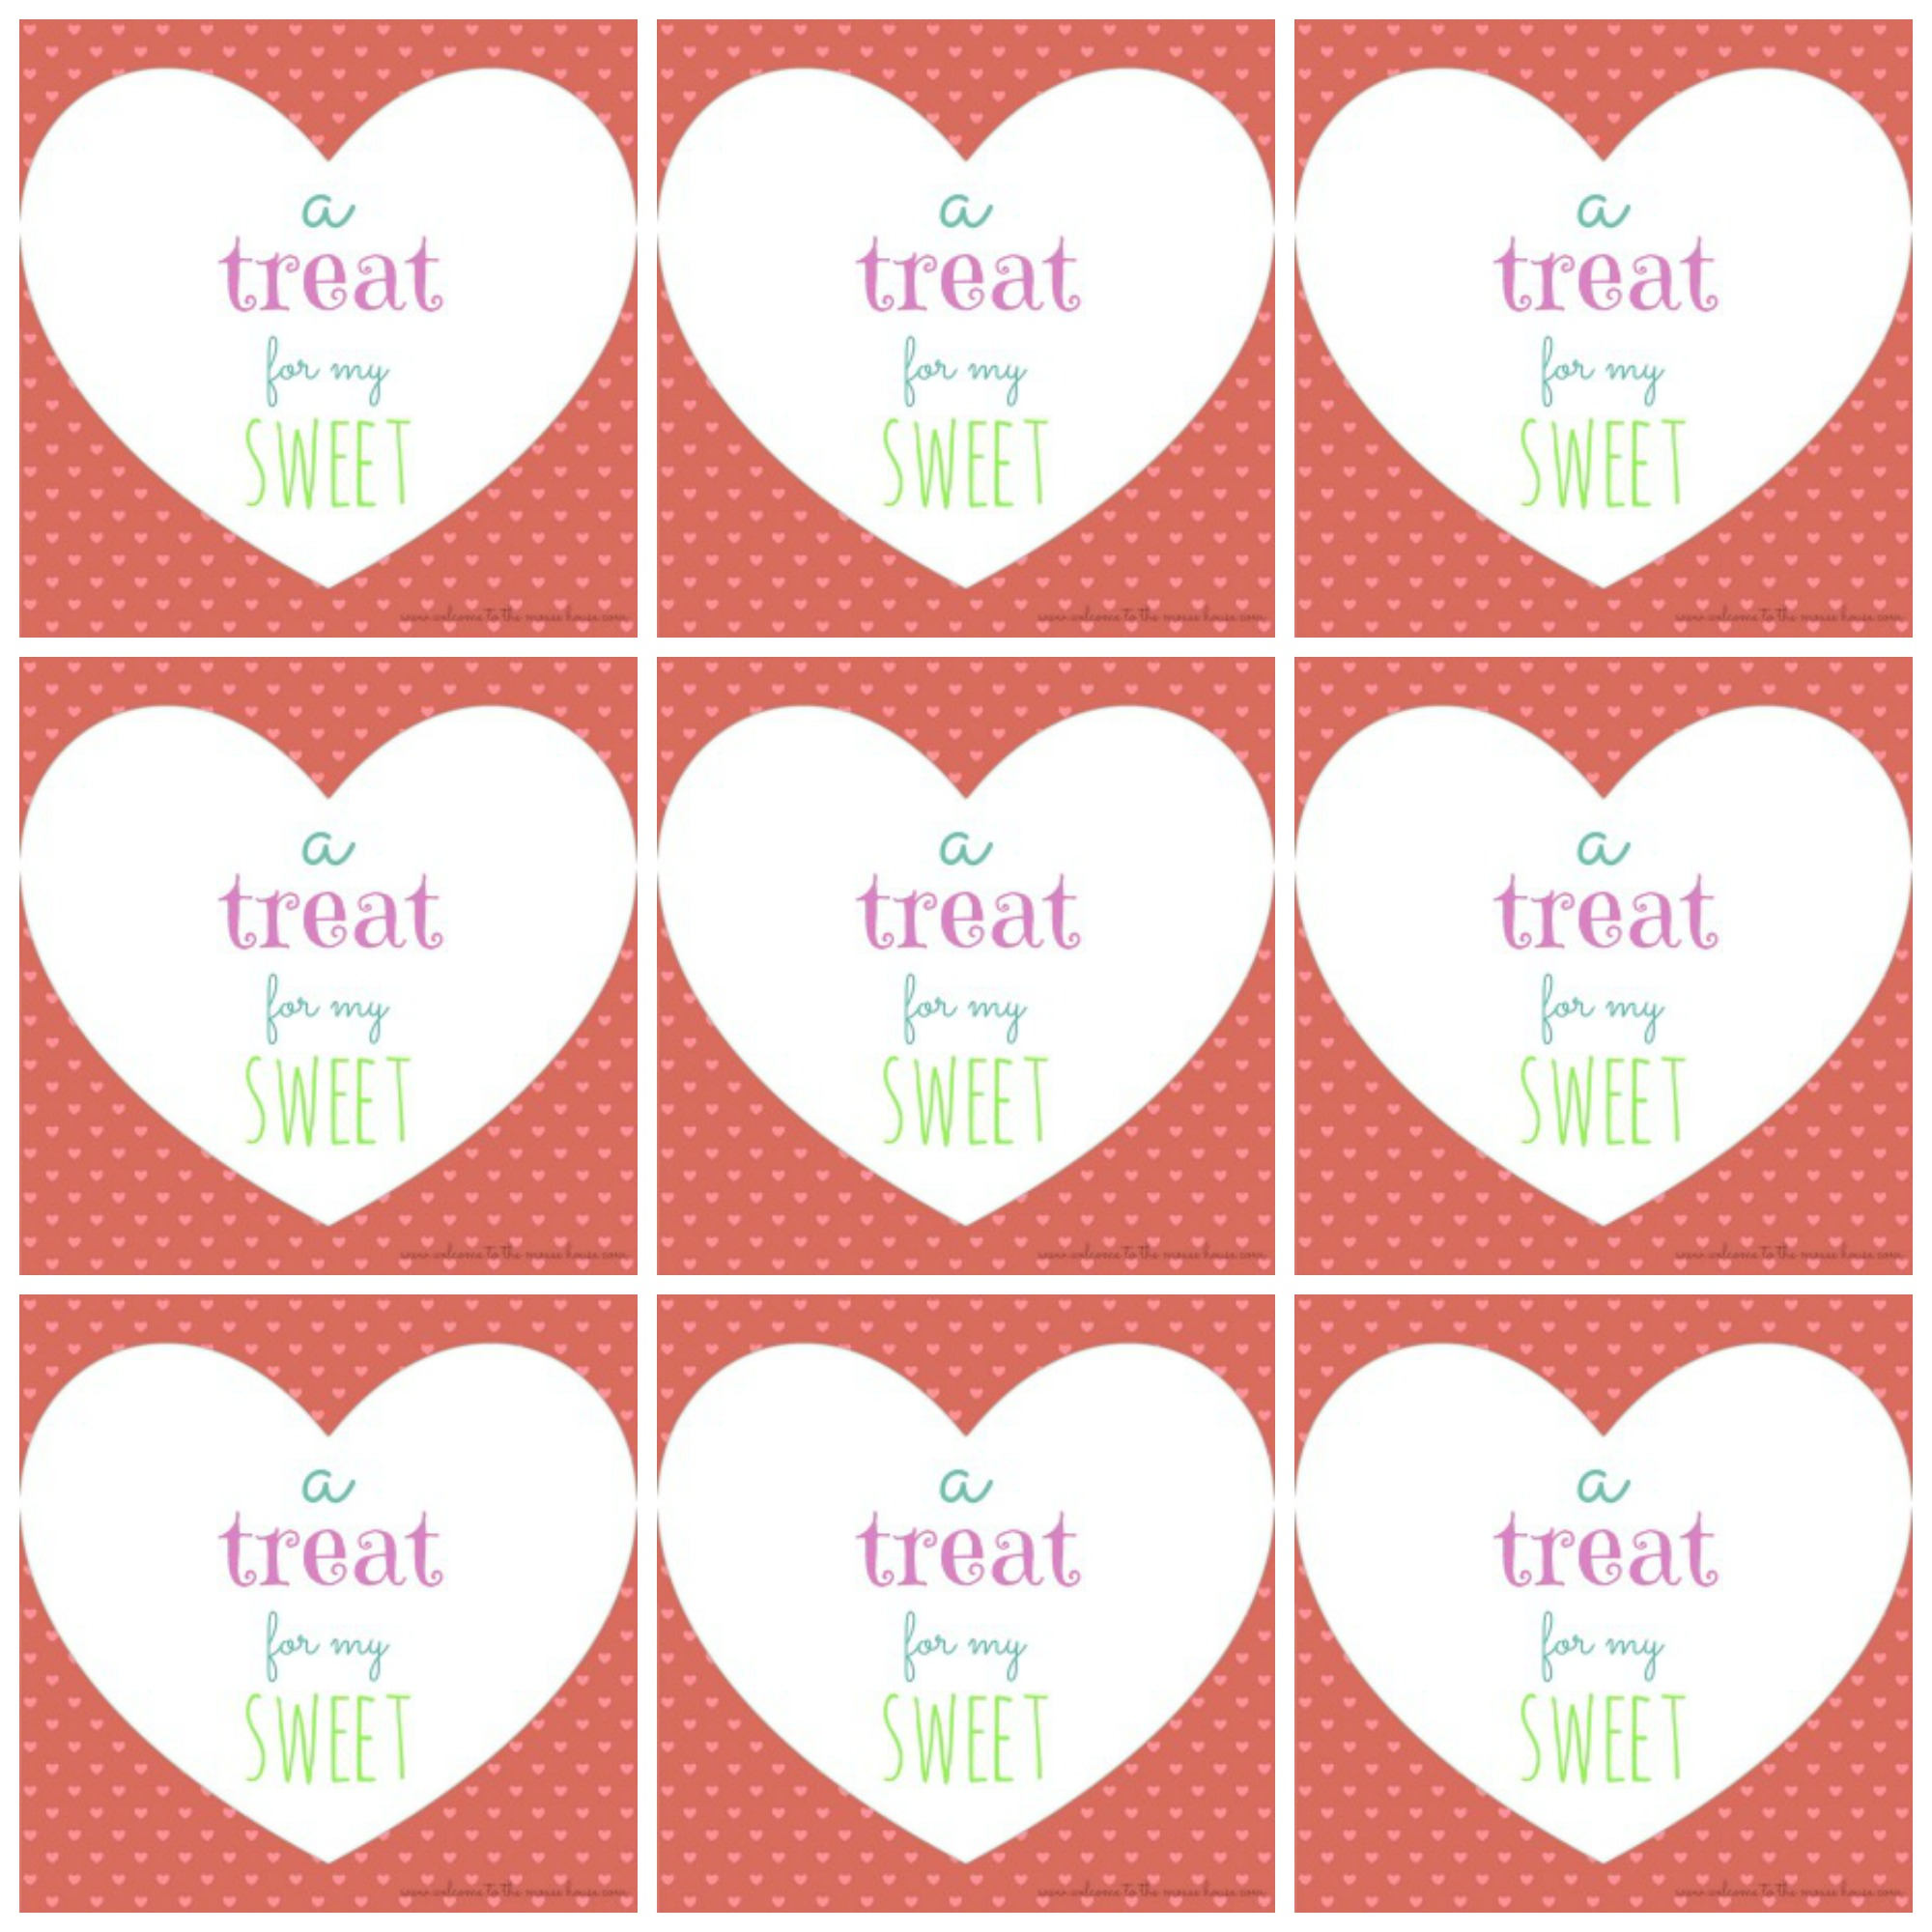 It's just a photo of Persnickety Printable Valentines Day Tags